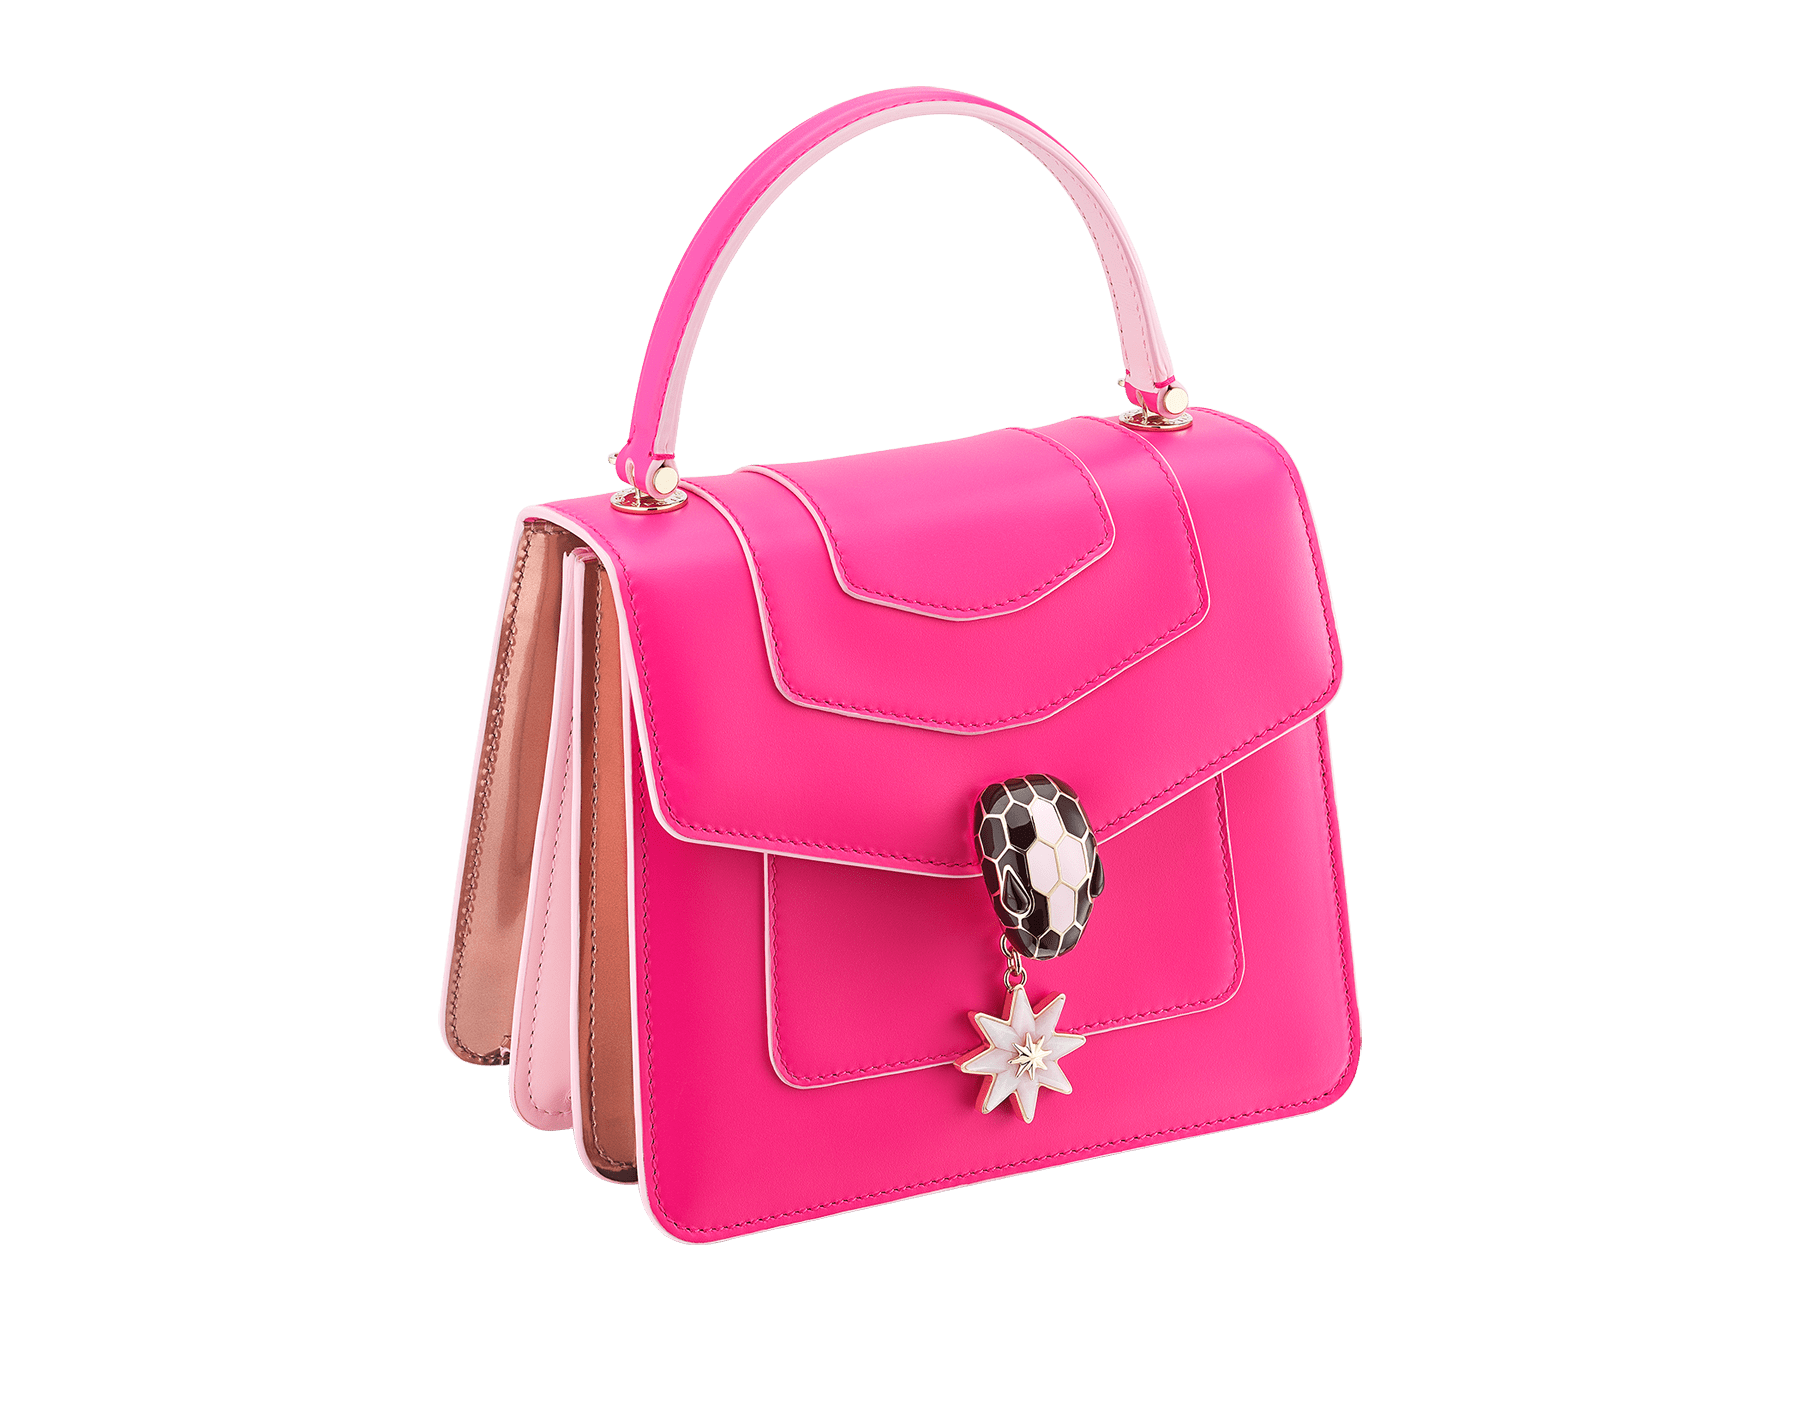 Serpenti Forever Holiday Season crossbody bag in flash amethyst, rose quartz brushed metallic and rosa di francia calf leather. Snakehead closure in light gold plated brass embellished with black and sakura pink enamel, black onyx eyes and a pink opal eight-pointed star charm. 289373 image 2